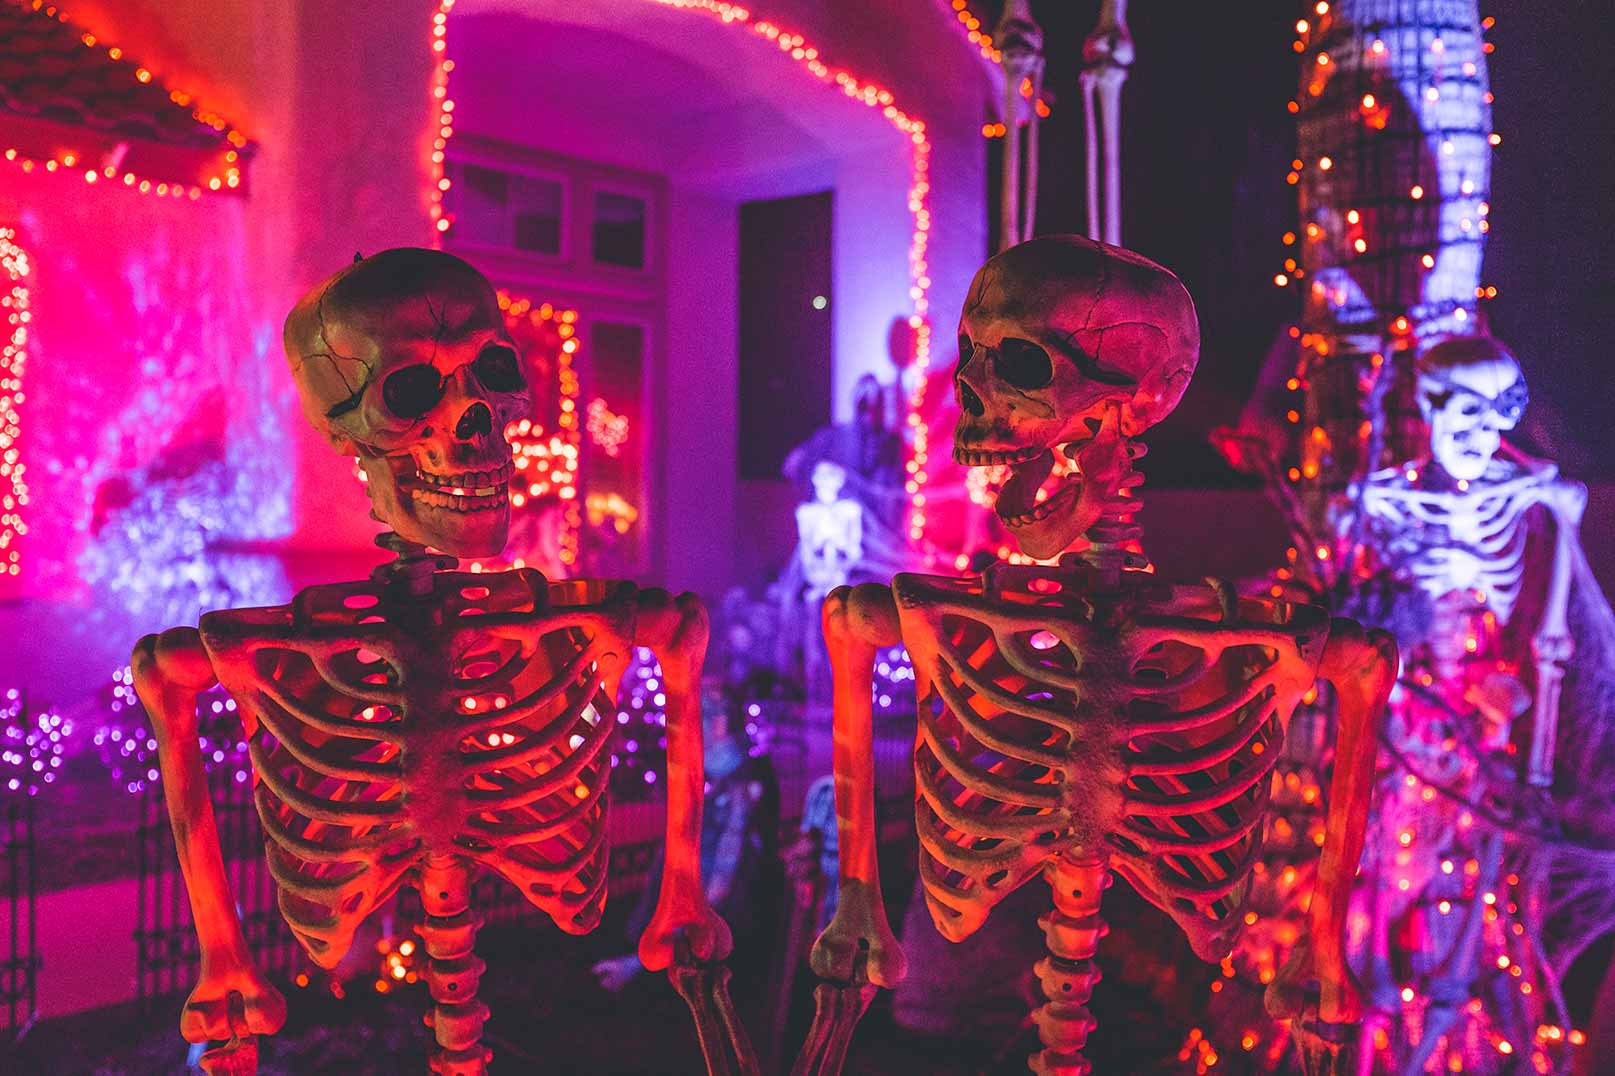 The Data hiding behind Halloween